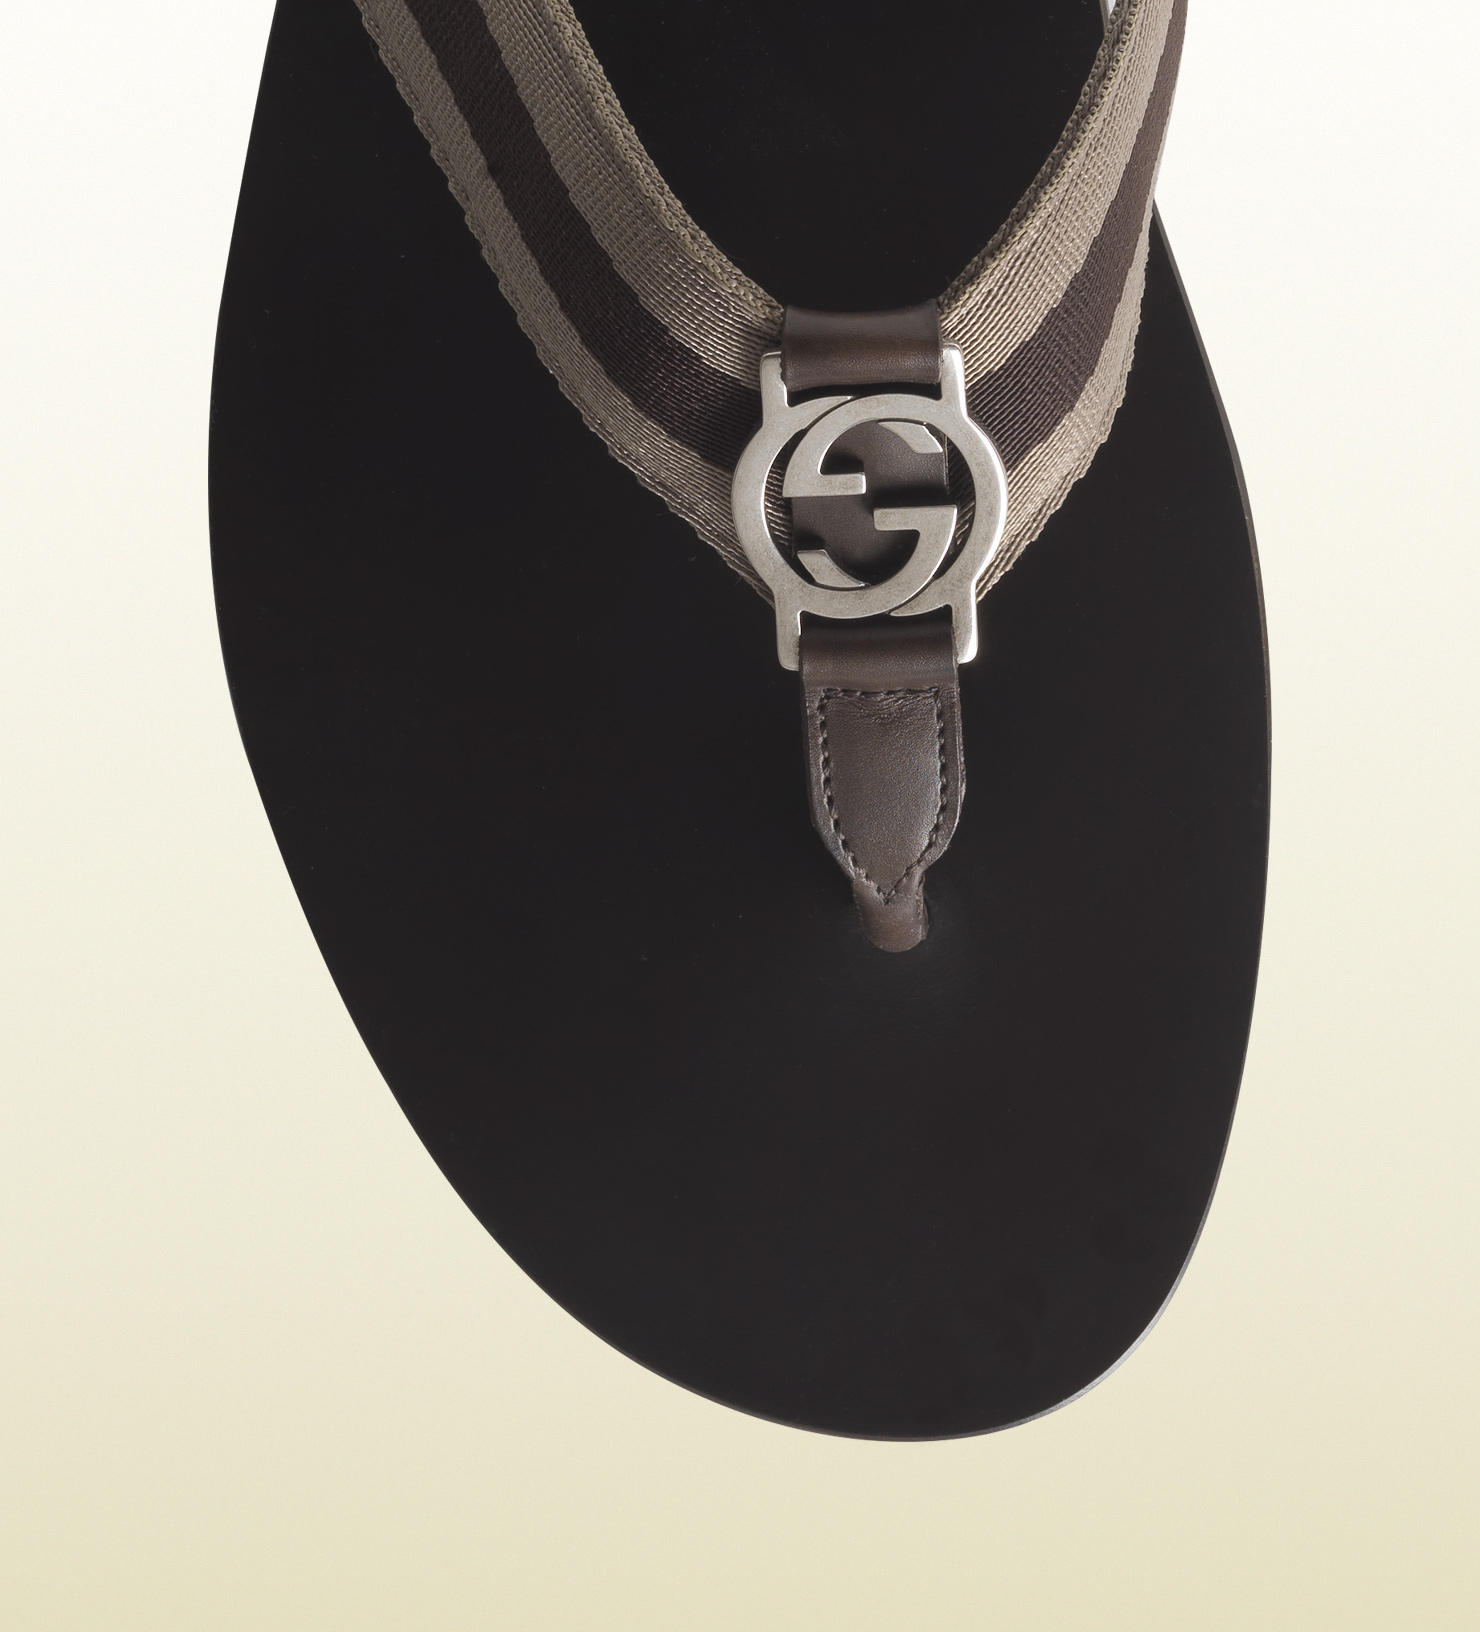 672f6e8fbadce7 Lyst - Gucci Nylon Web Thong Sandal in Natural for Men